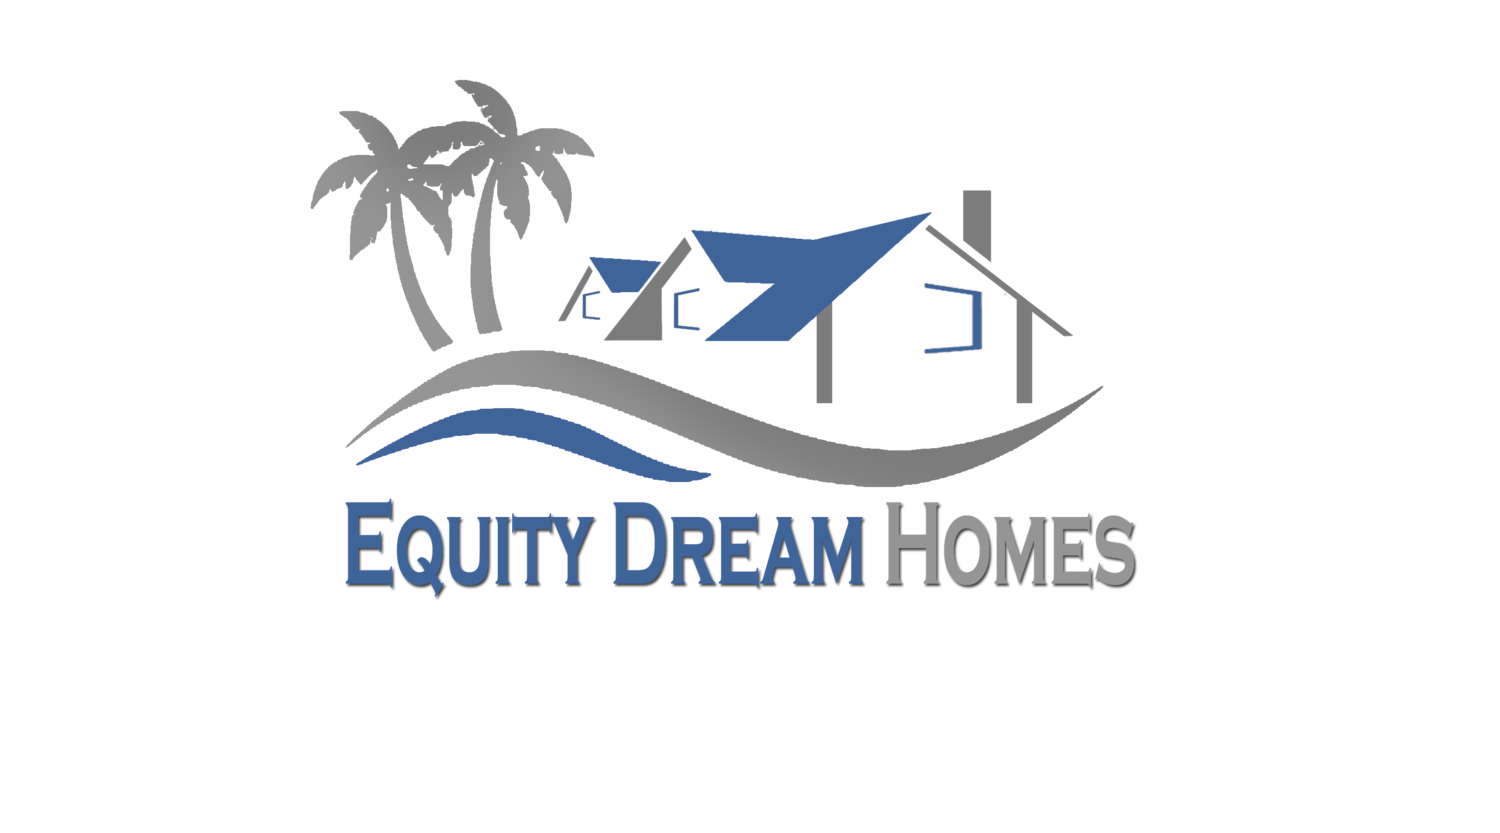 Equity Dream Homes